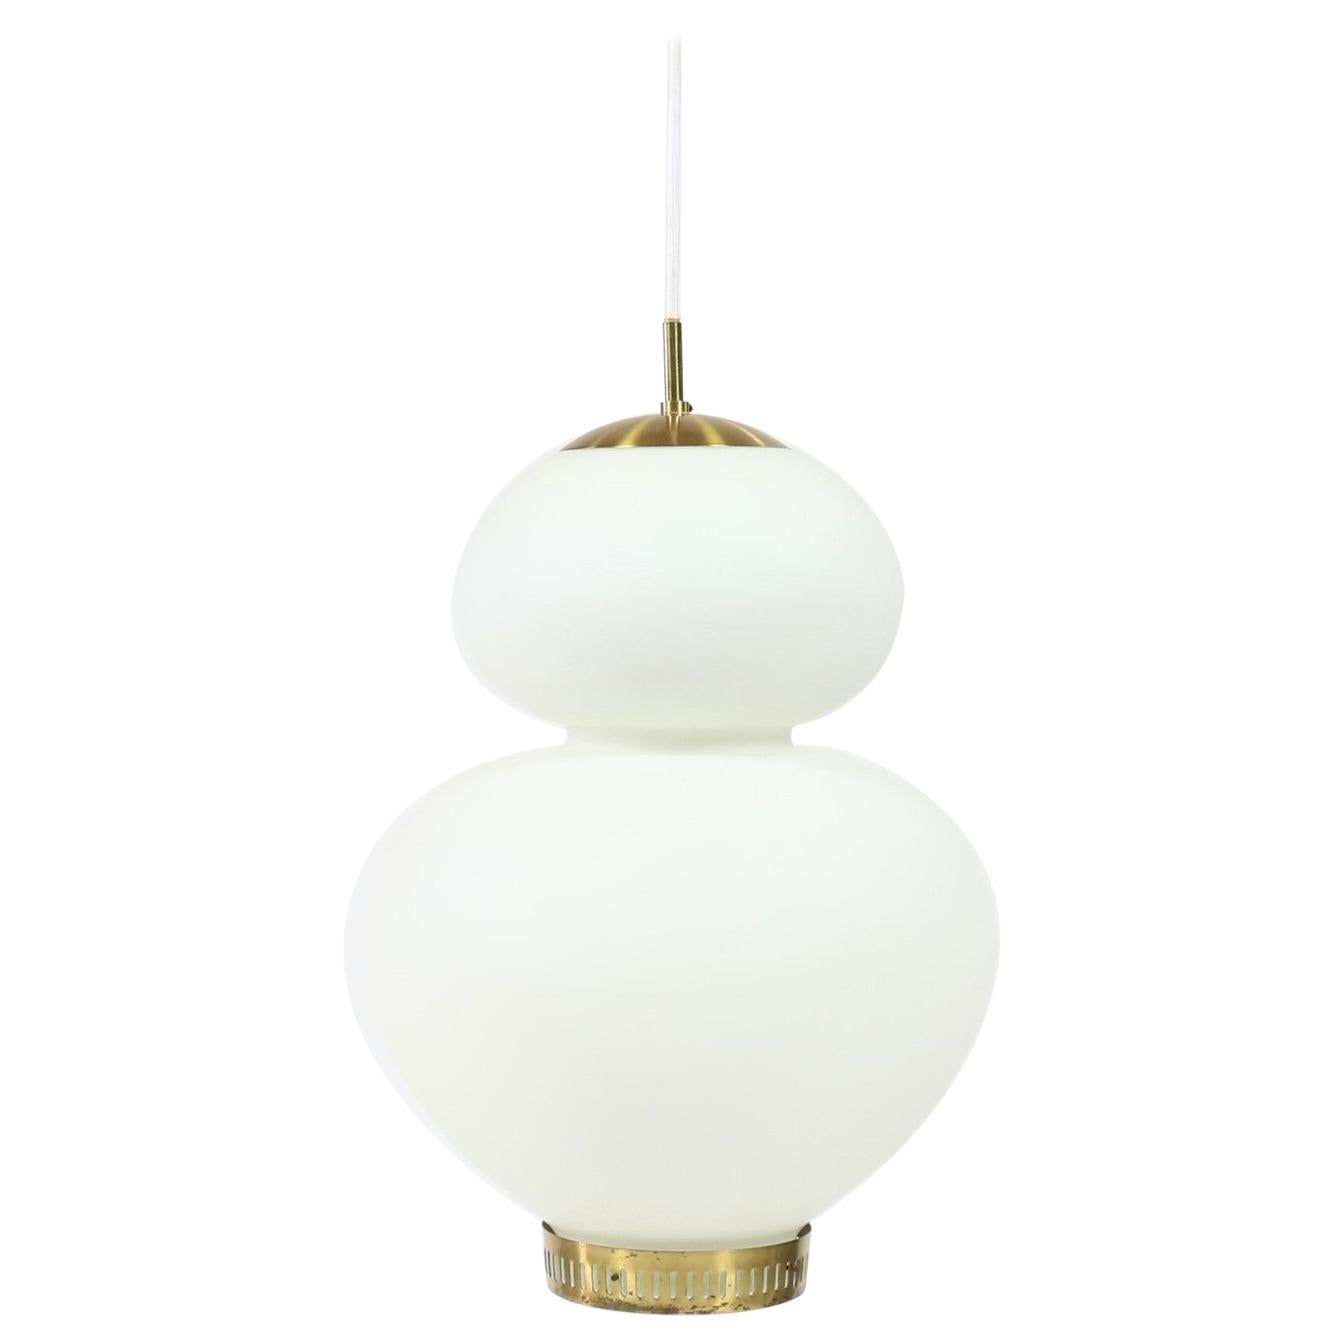 "Huge Danish Modern Brass and Opal Glass ""Peanut"" Pendant by Bent Karlby for LYFA"